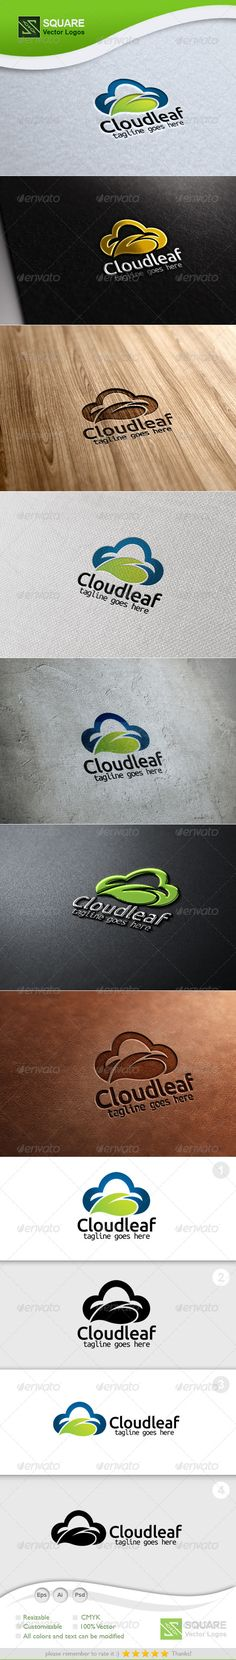 Buy Cloud, Leaf Vector Logo Template by svlogos on GraphicRiver. File Description This is custom logo template. Illustrator (AI), Photoshop (PSD), Vector (EPS) logo files included in. Logo Design Template, Logo Templates, Gear Template, Shield Template, Leaf Vector, Logo Online, Online Web, Logos Photography, Star Photography